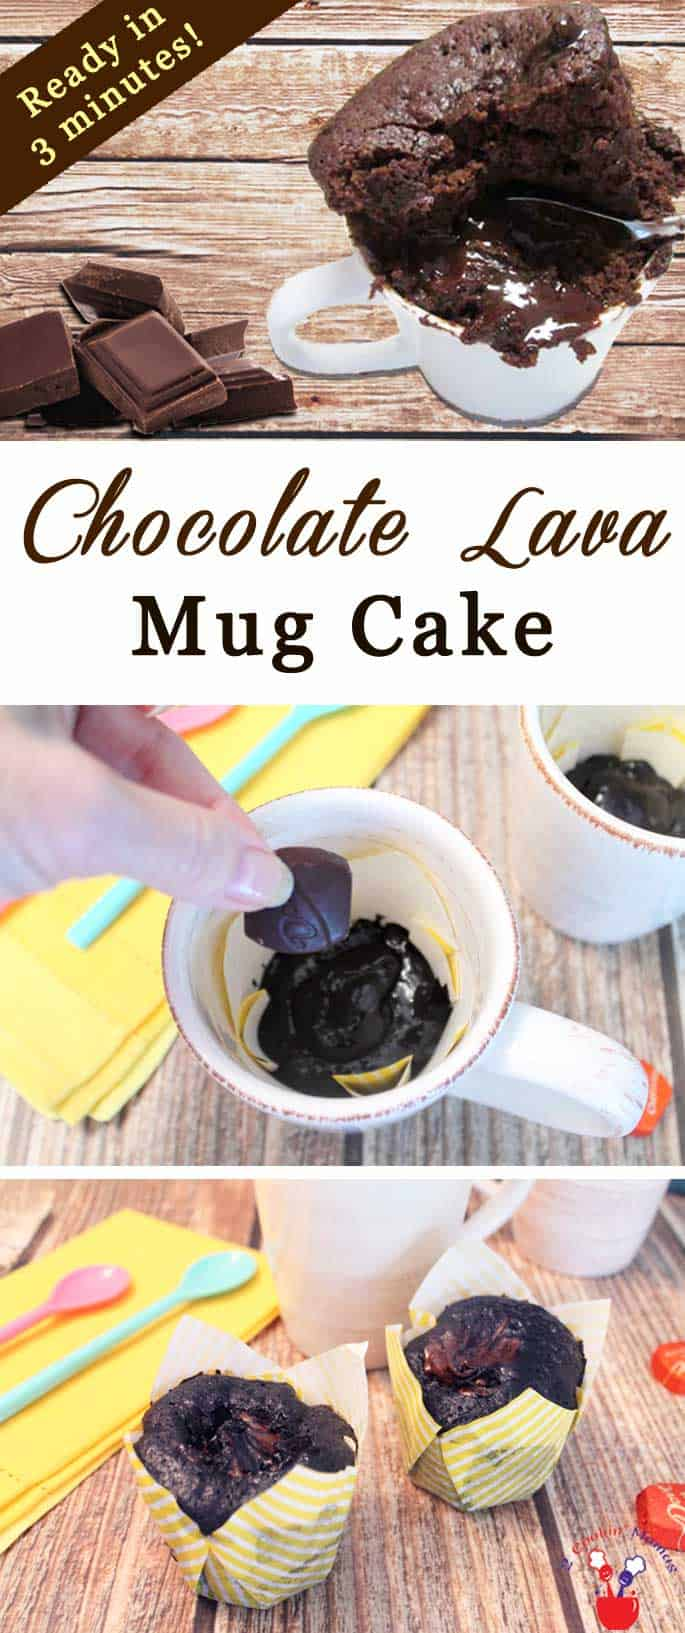 An easy mug cake to make for those that love chocolate! Chocolate cake, a liquid chocolate center, pour in a mug, pop in the microwave, ready in a minute! #lavacake #mugcake #chocolatecake #quickandeasydessert #dessert